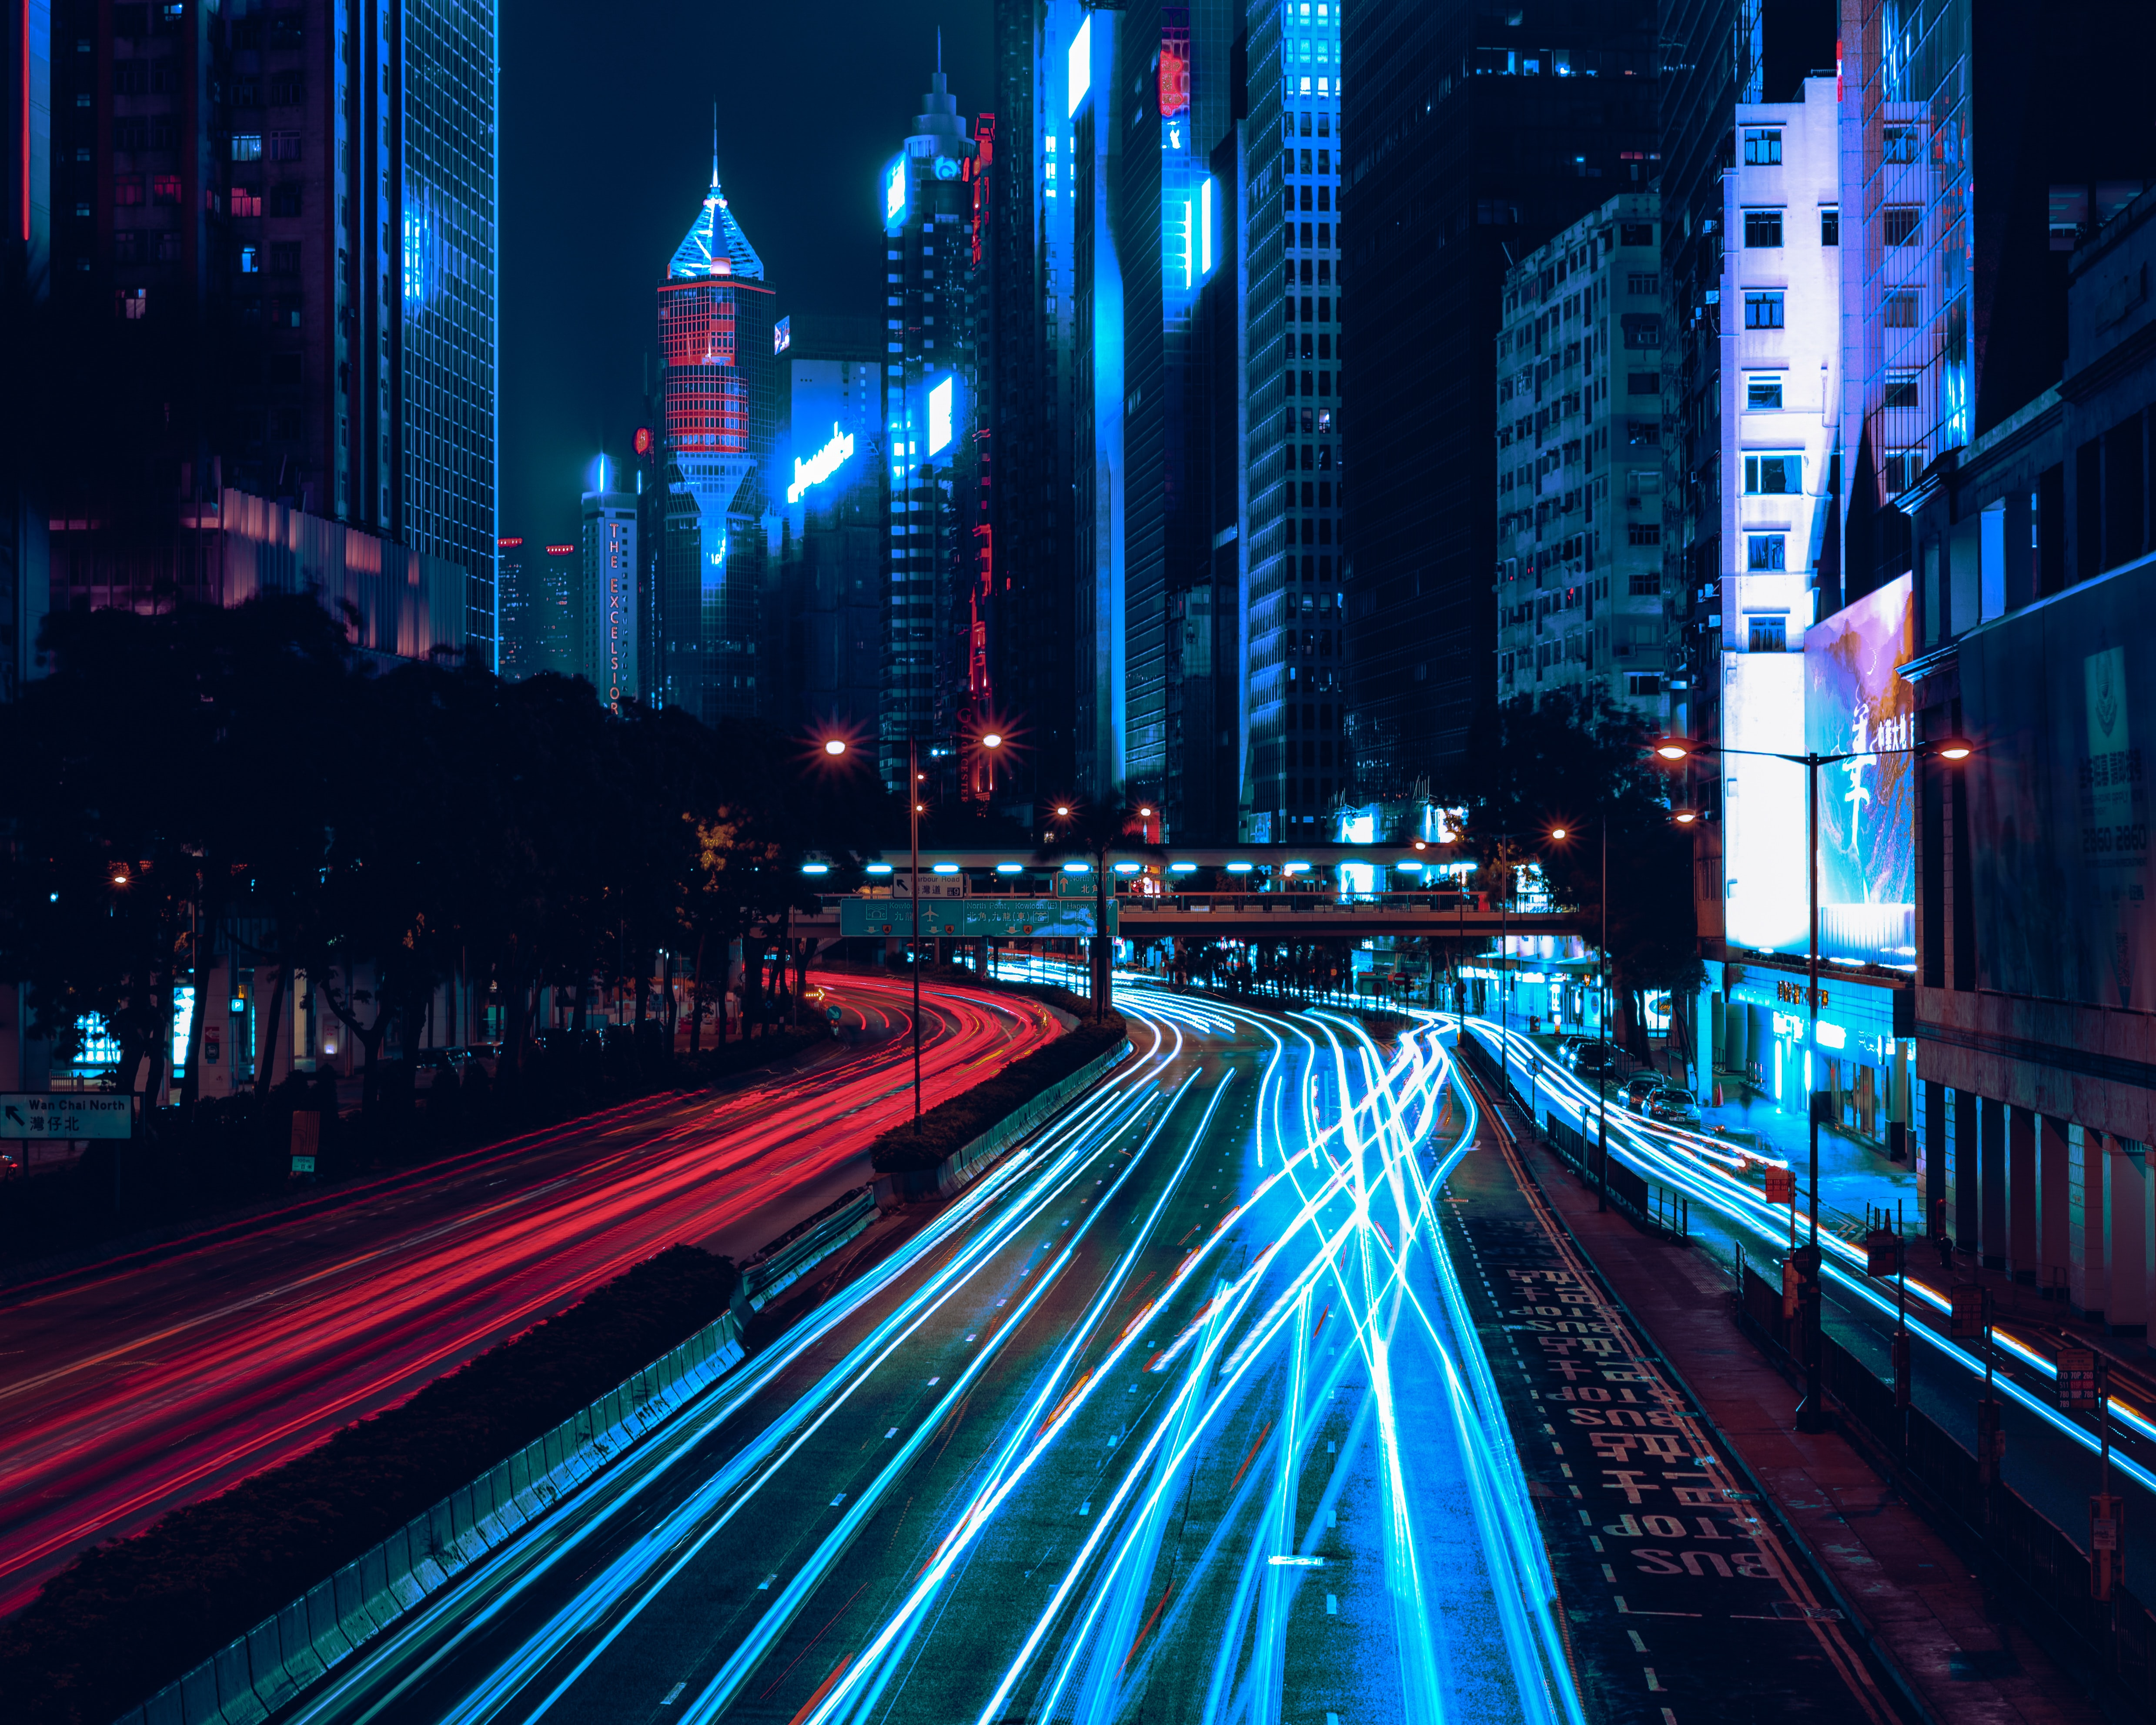 Background Car Hd Wallpapers Cities: Download Free Images On Unsplash